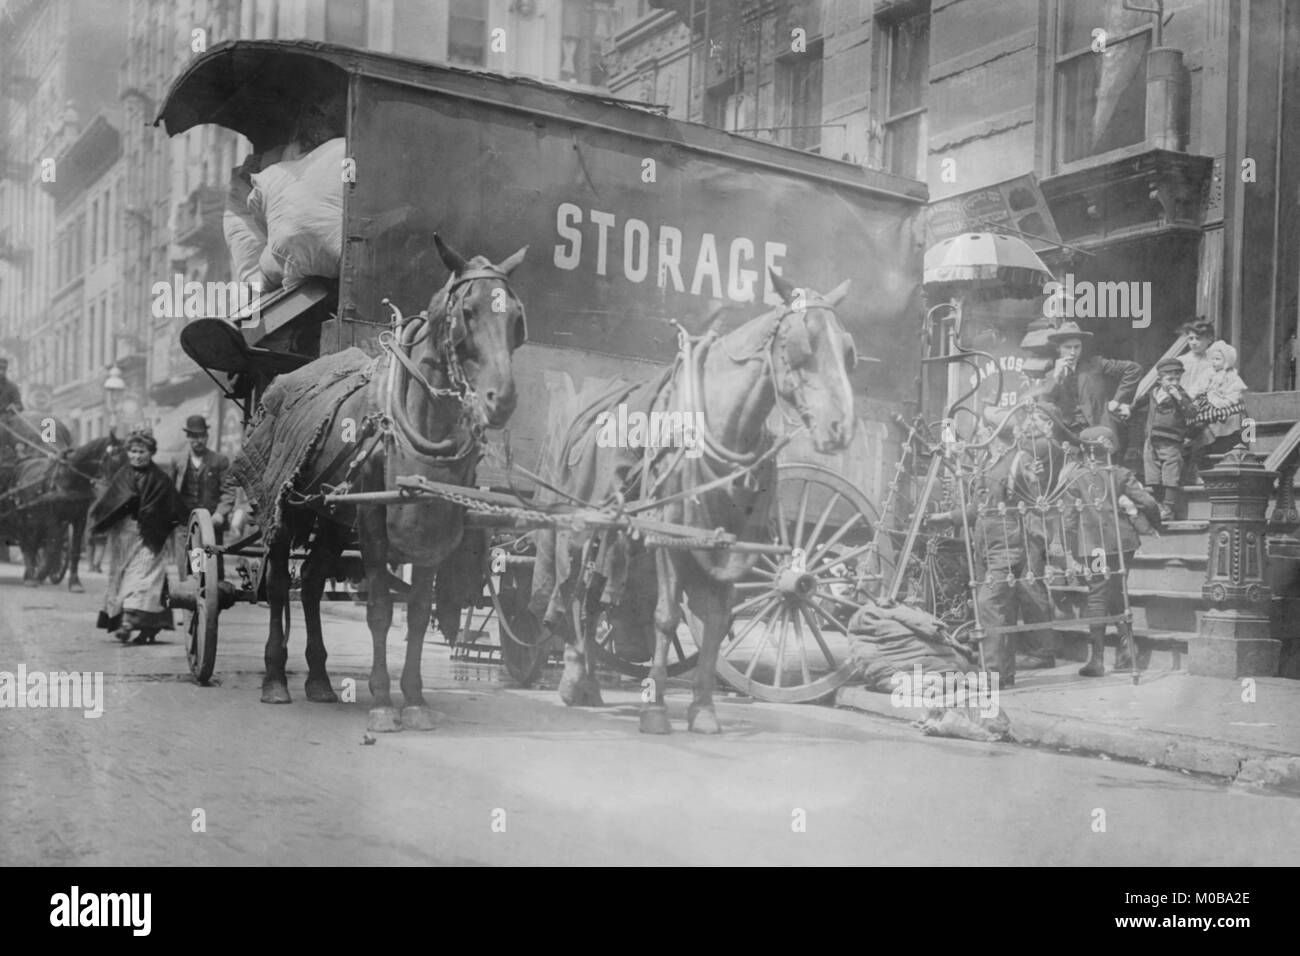 Horse Drawn Wagon with sign saying STORAGE unload the home content of a family being evicted - Stock Image